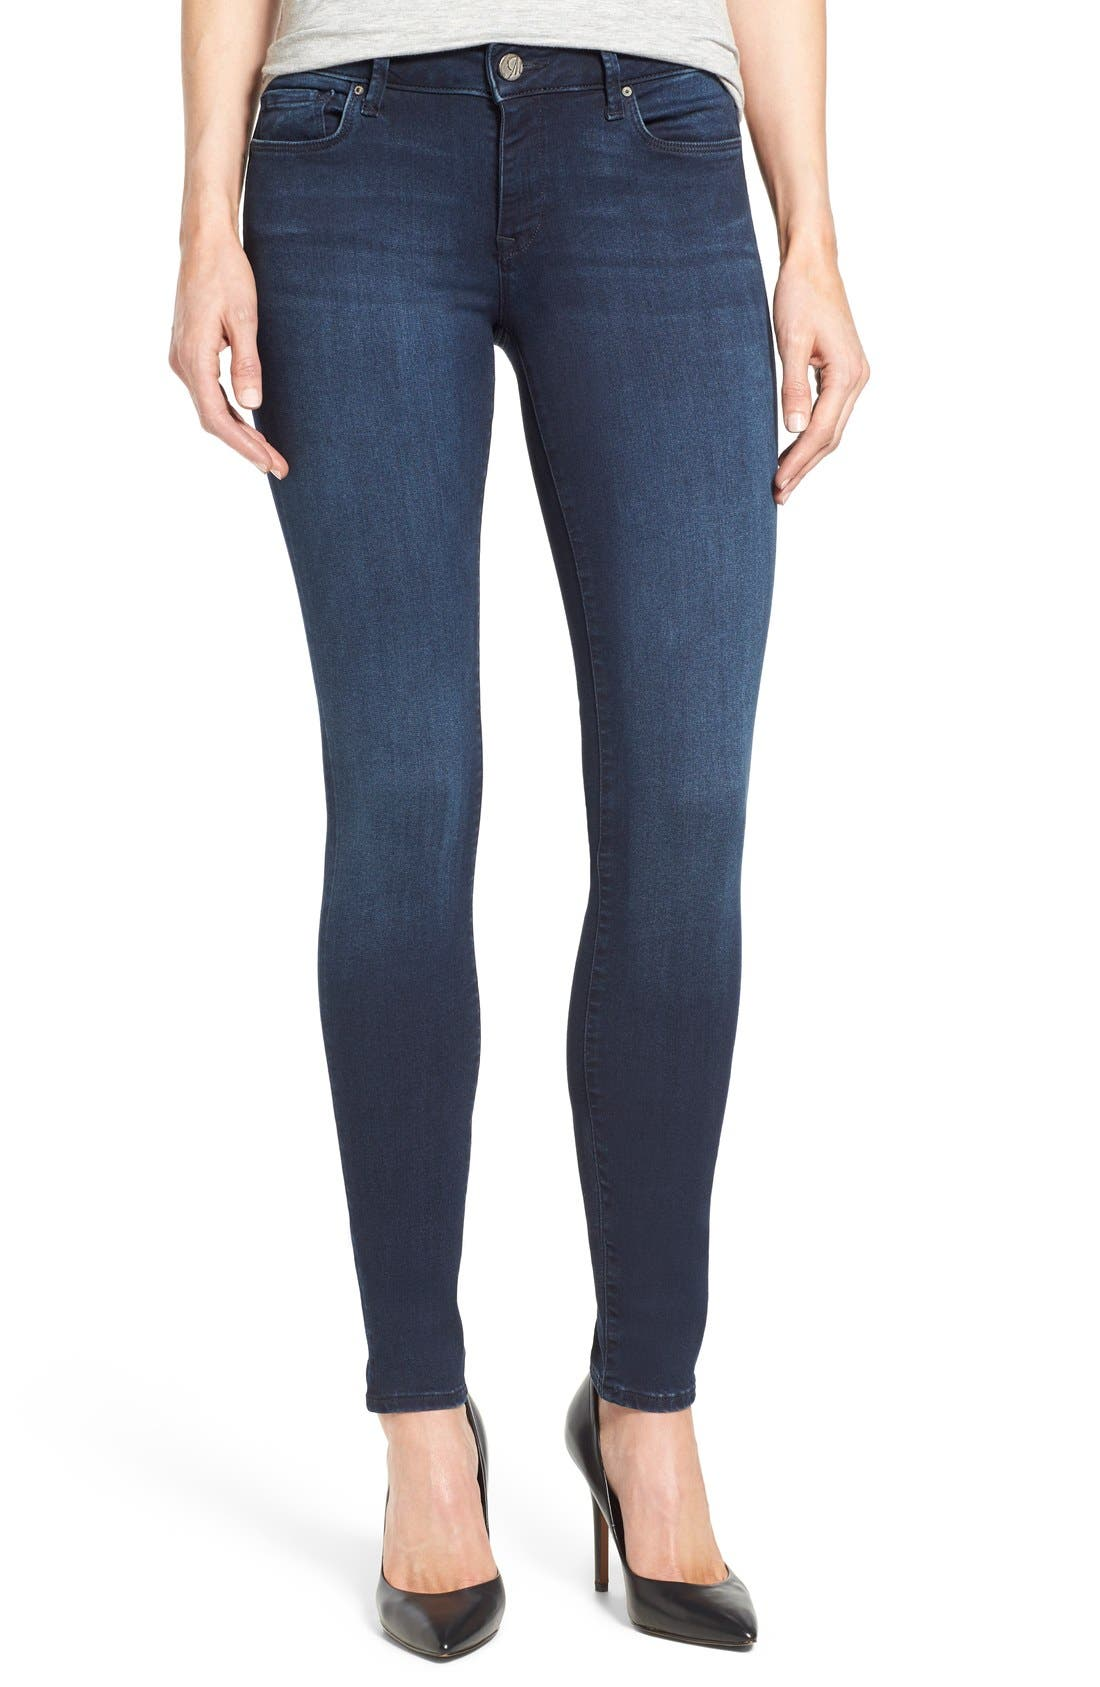 'Adriana' Stretch Skinny Jeans,                         Main,                         color, Dark Blue